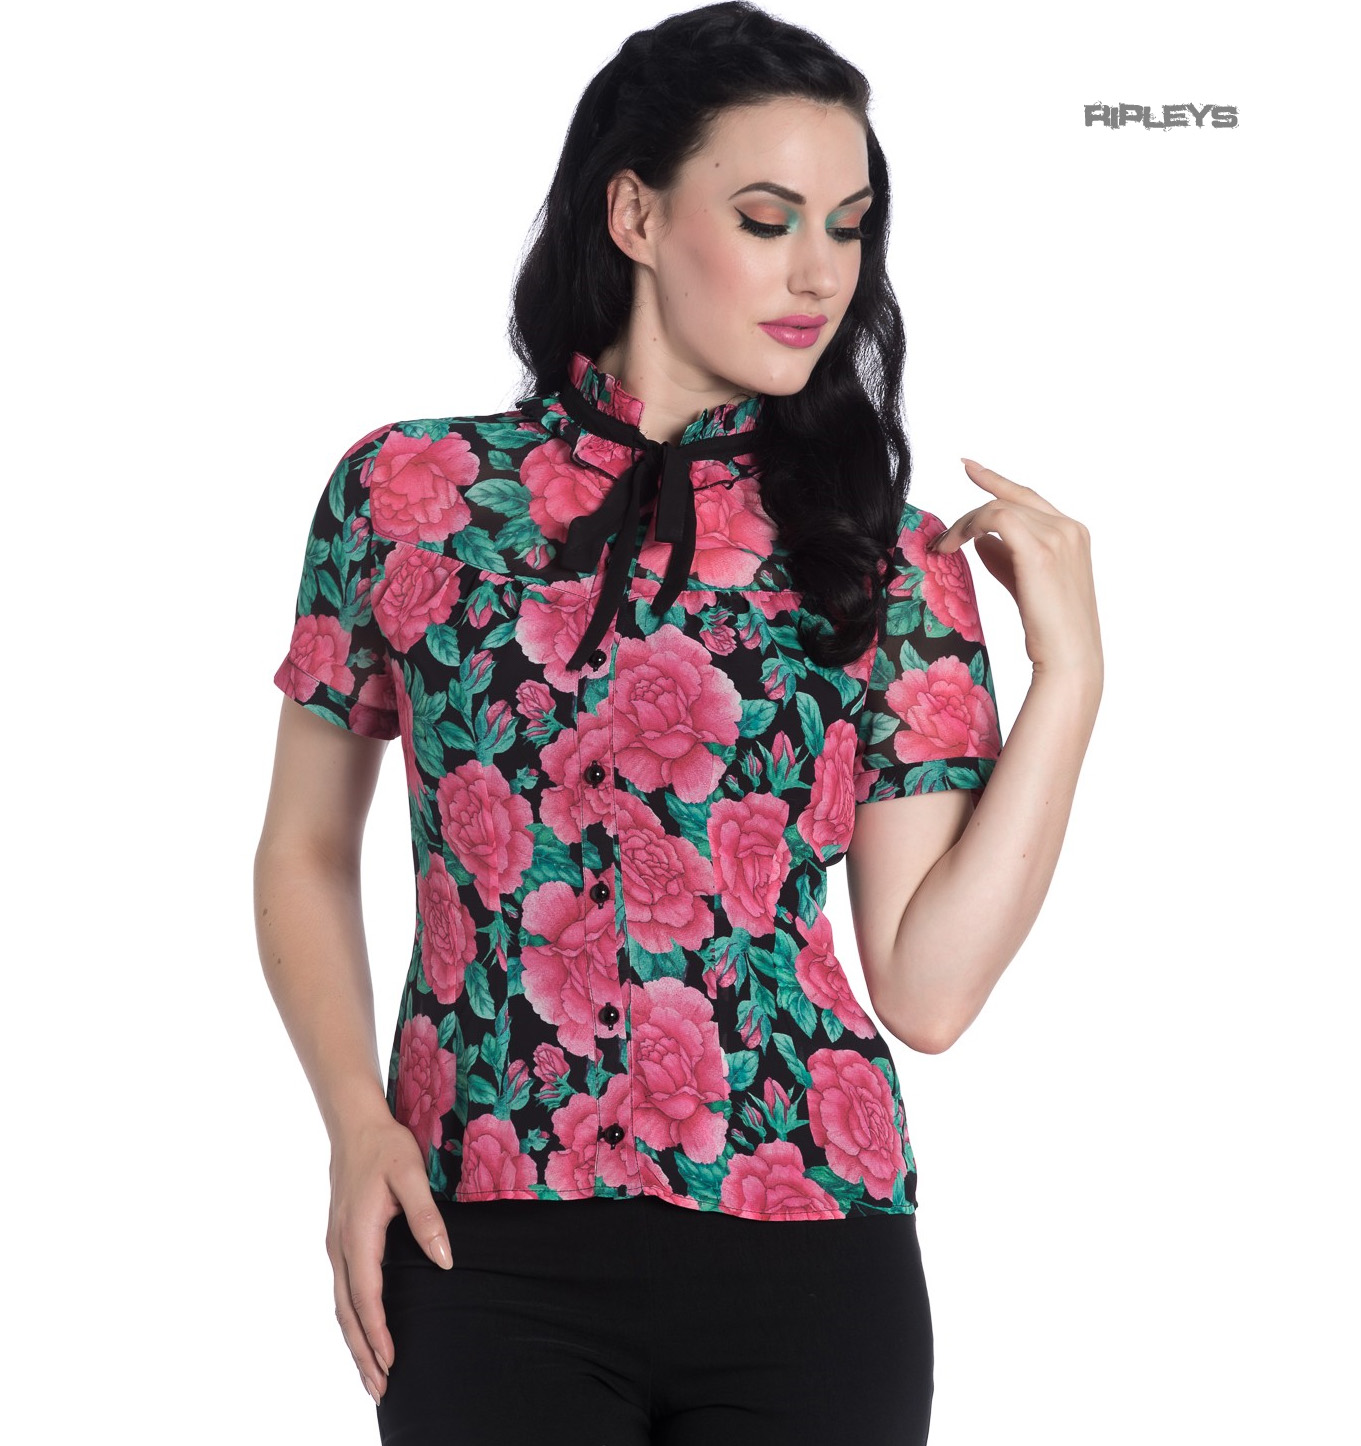 Hell-Bunny-Shirt-Top-Flowers-Roses-EDEN-ROSE-Black-Pink-Blouse-All-Sizes thumbnail 18